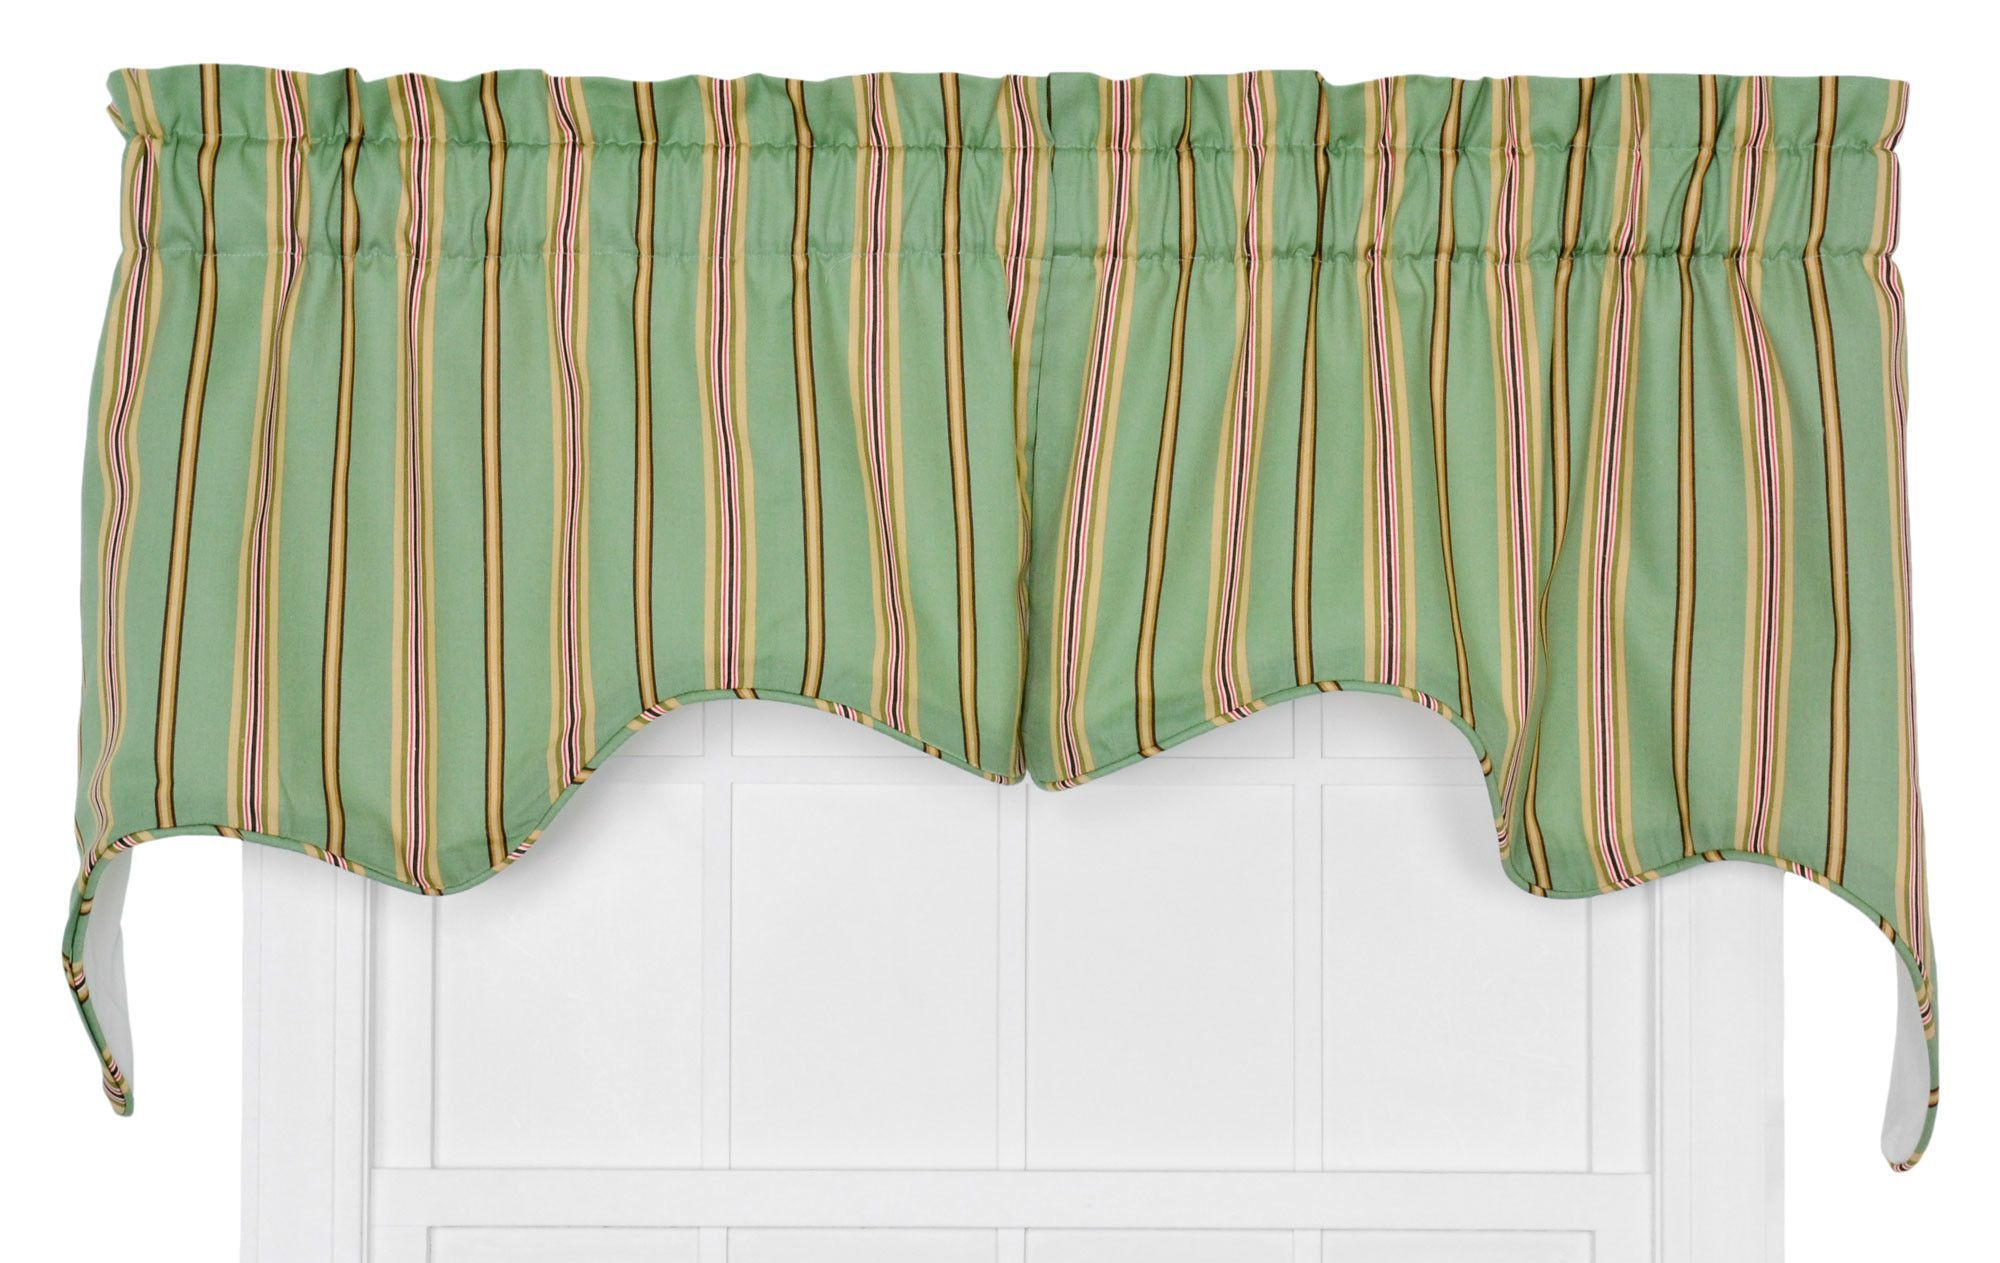 ideas pottery decor for bed bedrooms farmhouse valance window cozy ceiling decoration blanket best of modern full trends size valances bedroom curtains barn wooden bookcase